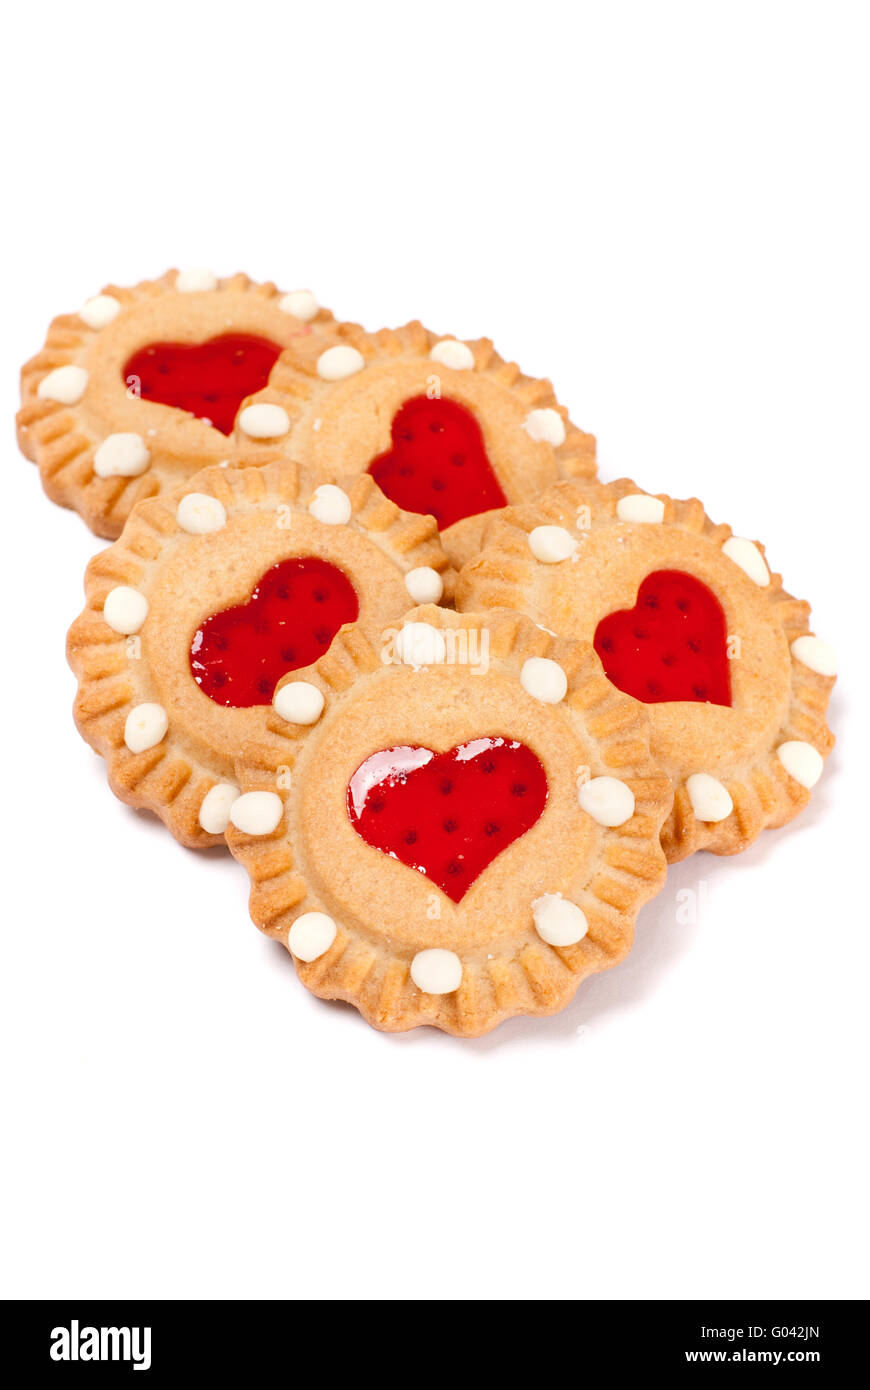 Festive heart cookies isolated on white background - Stock Image